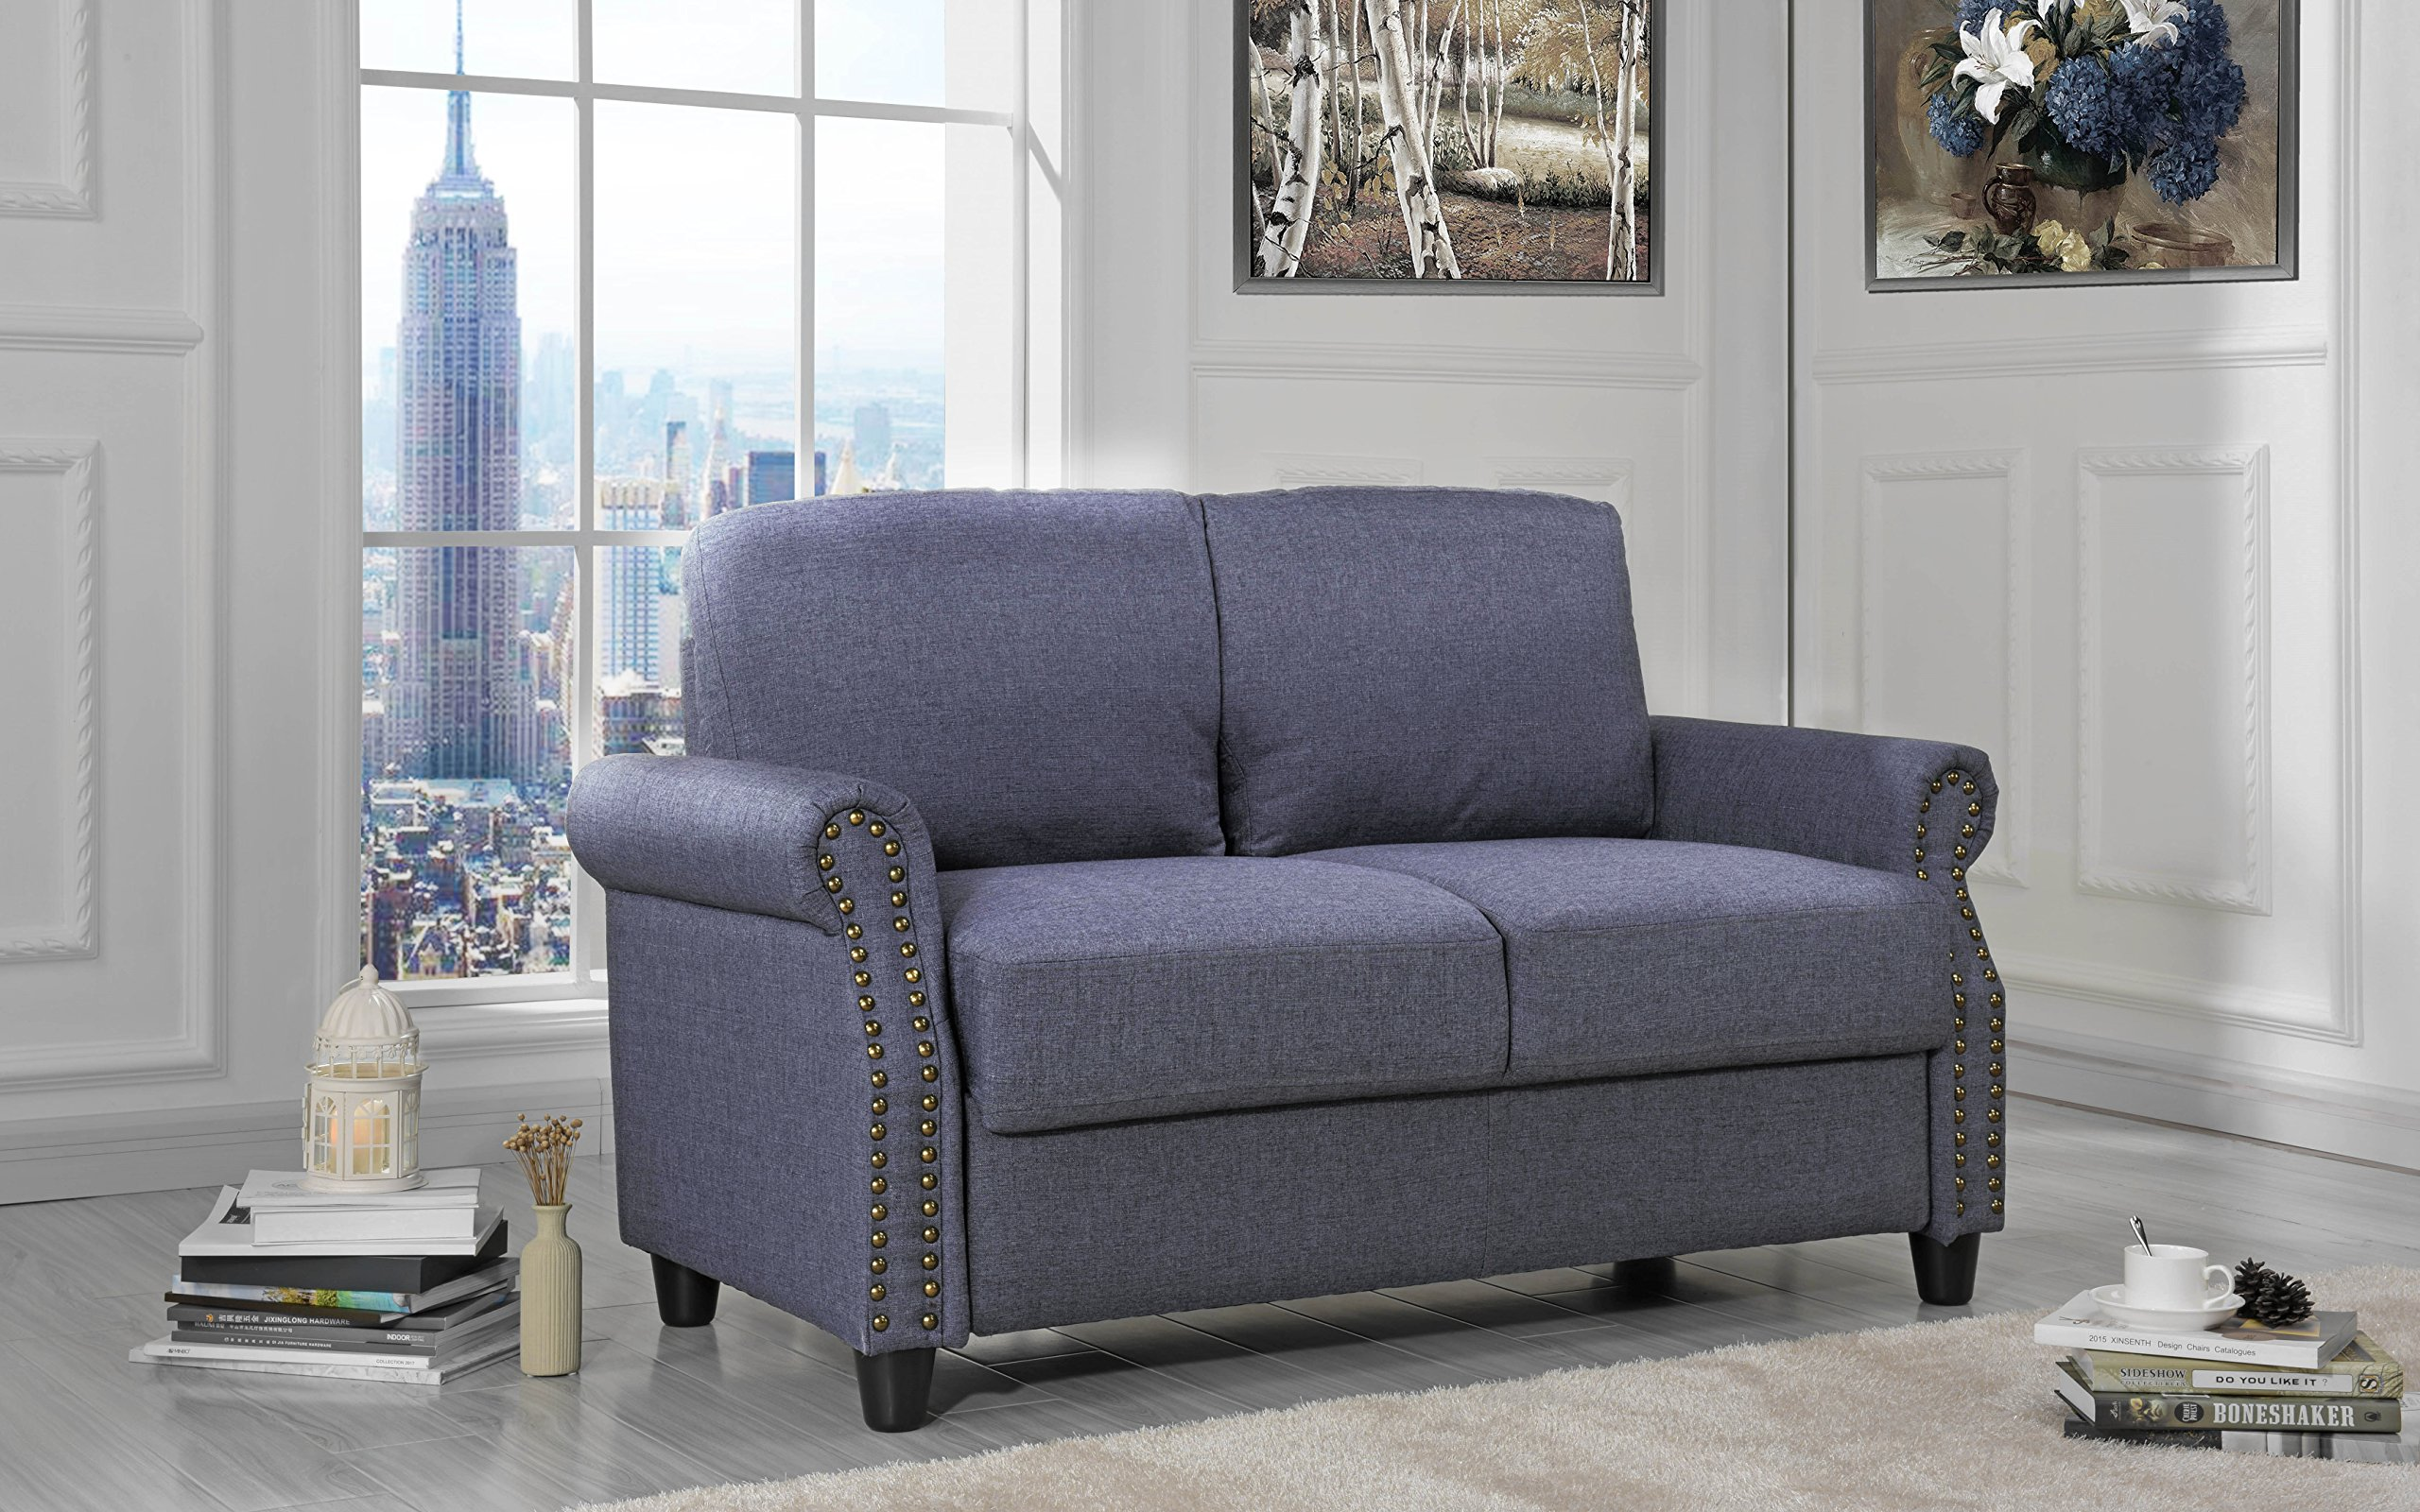 Classic Living Room Linen Loveseat with Nailhead Trim and Storage Space (Blue)